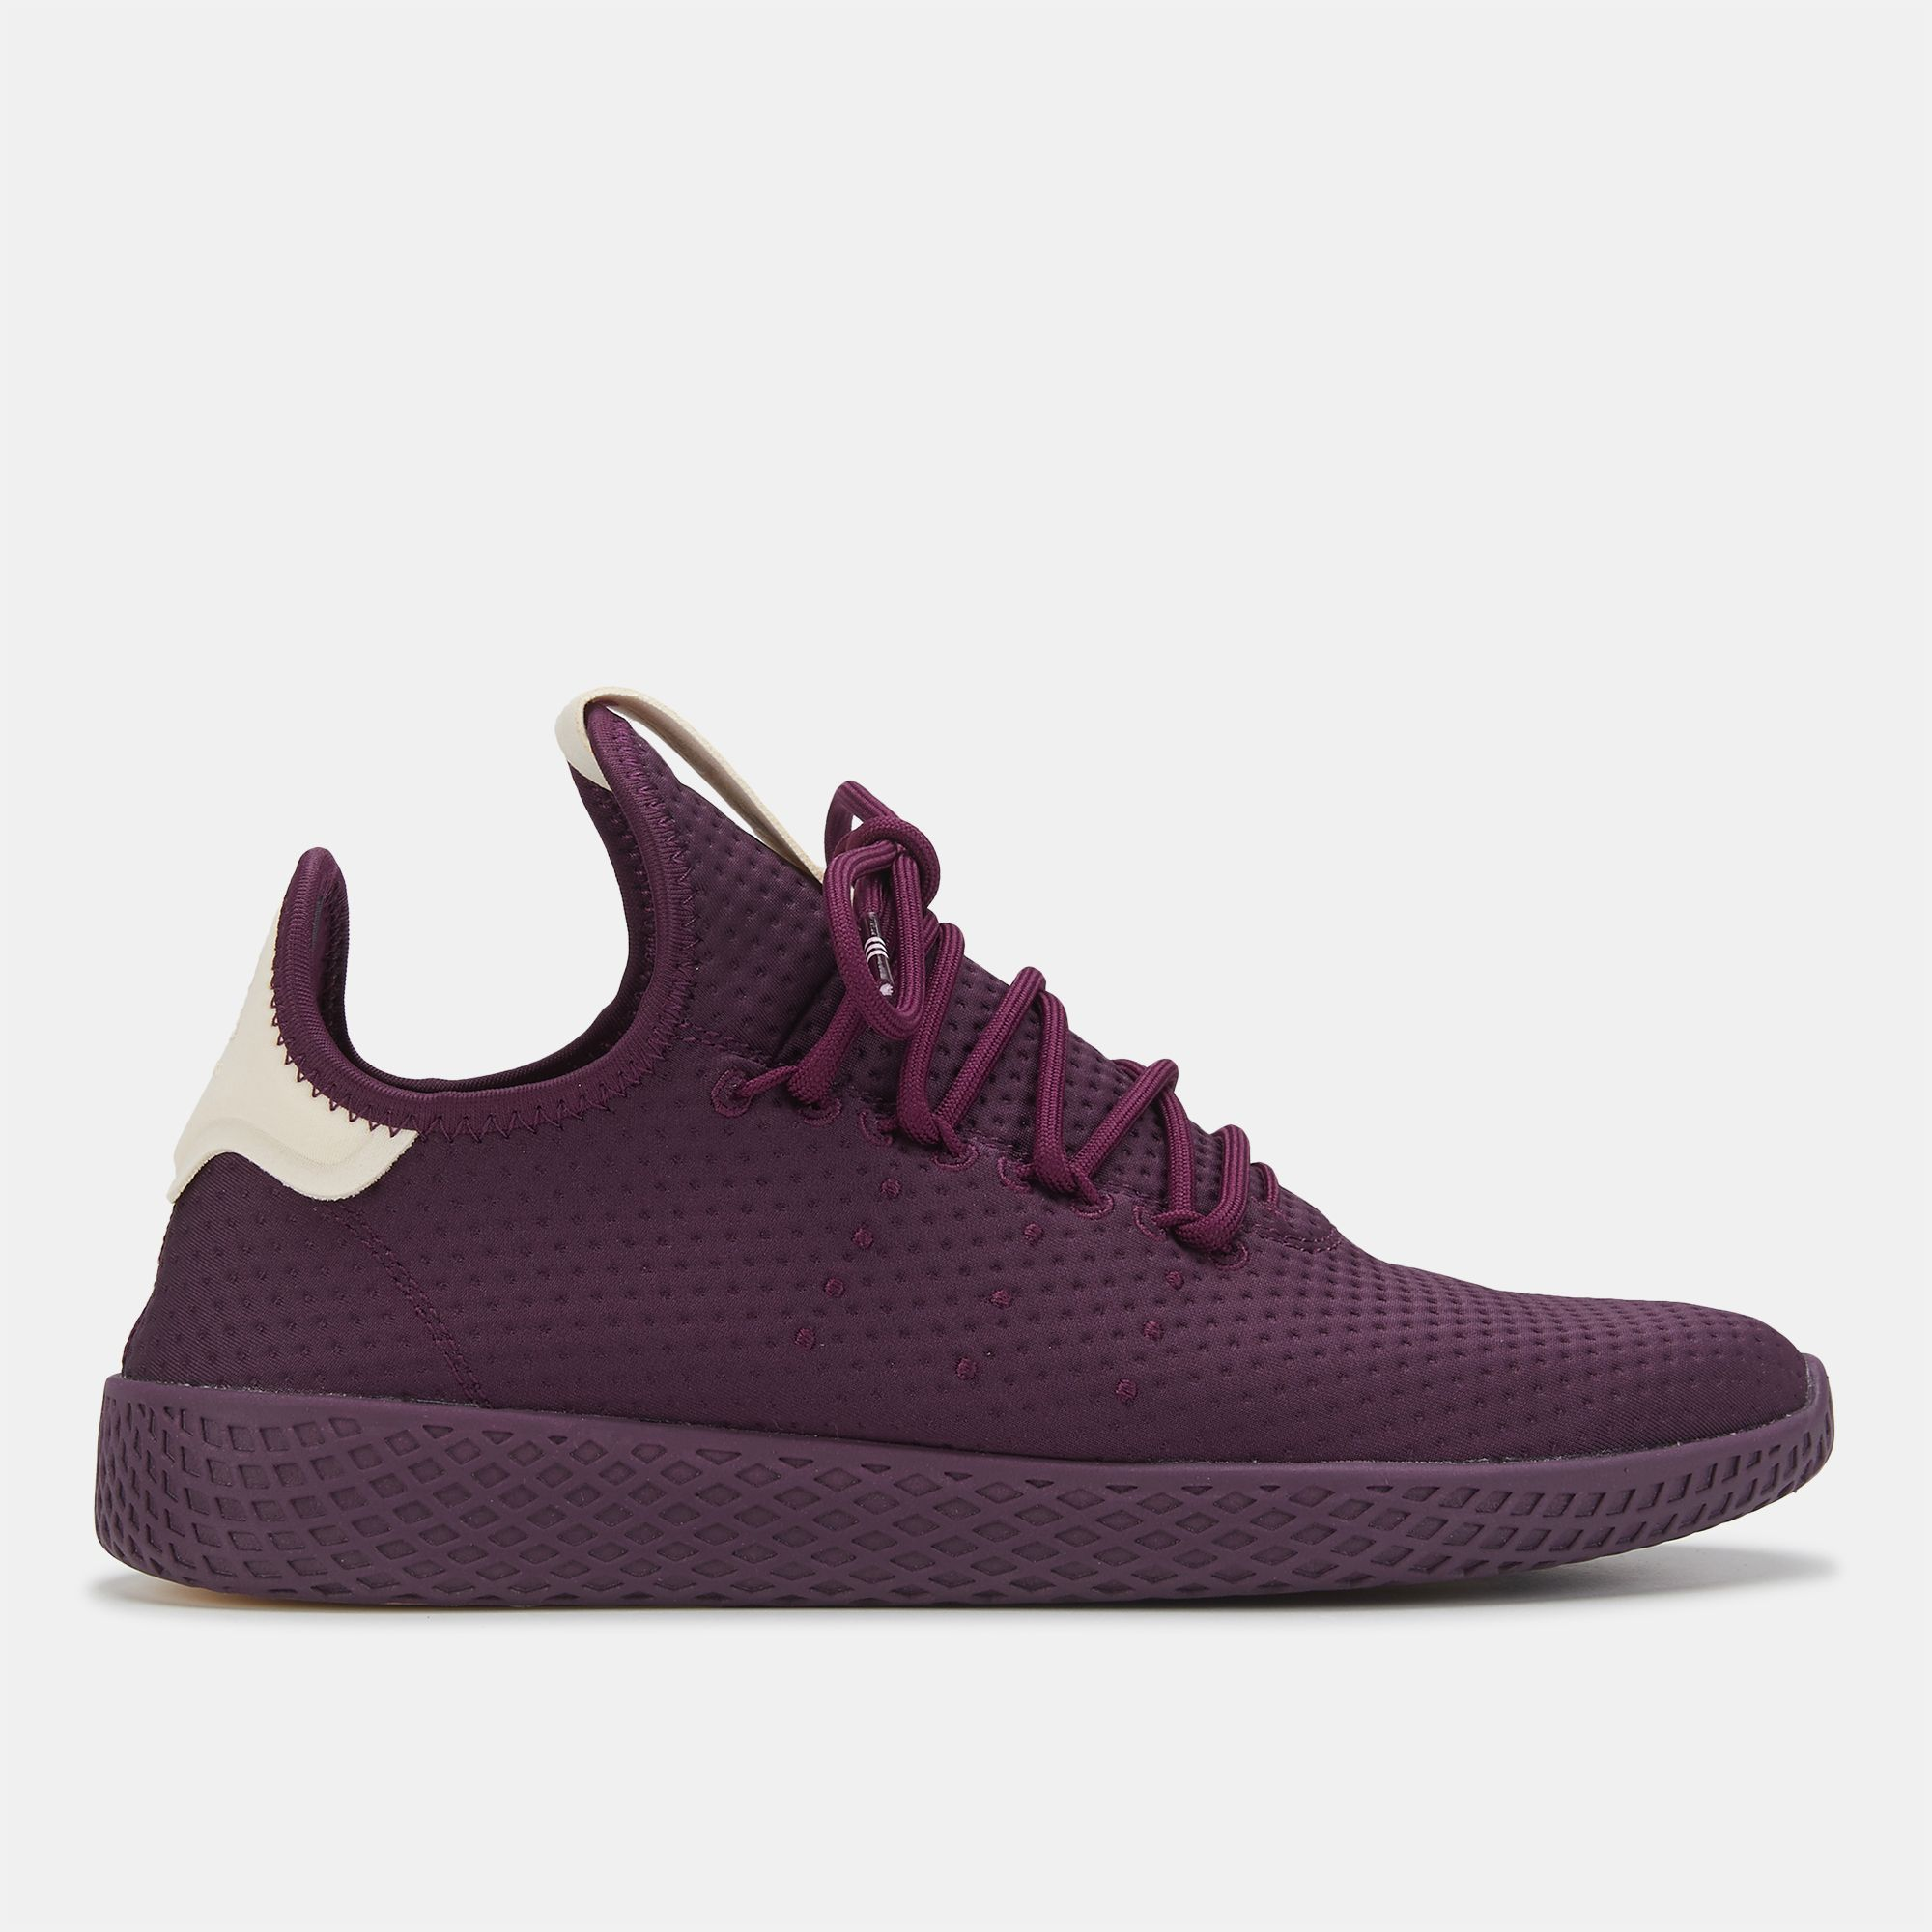 d9436003d2c46a adidas Originals Pharrell Williams  Tennis HU Shoe